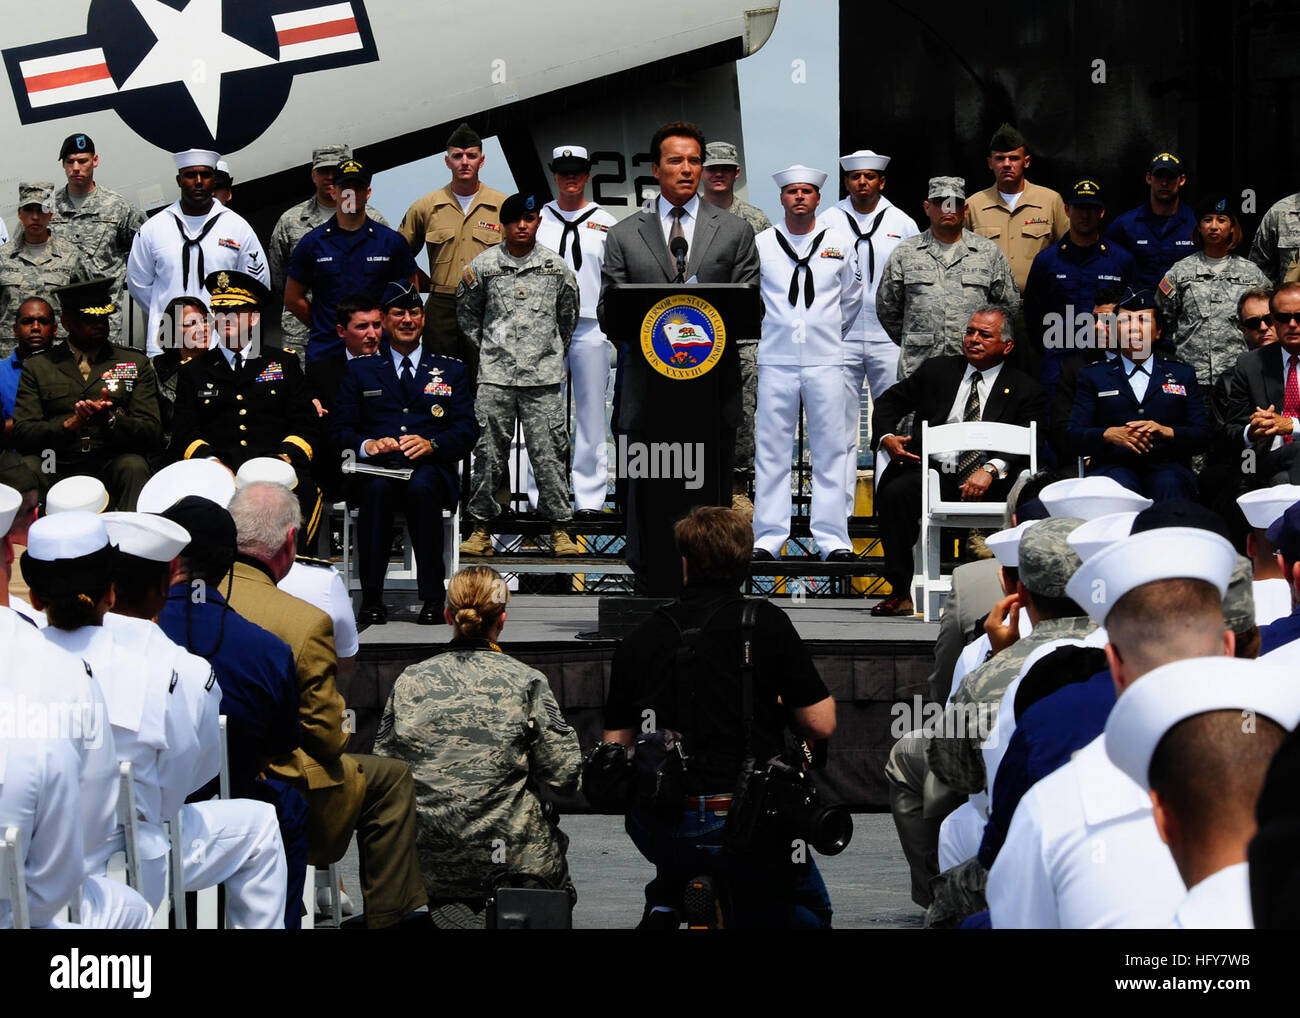 100603-N-8607R-071 SAN DIEGO (June 3, 2010) California Governor Arnold Schwarzenegger addresses veterans aboard - Stock Image